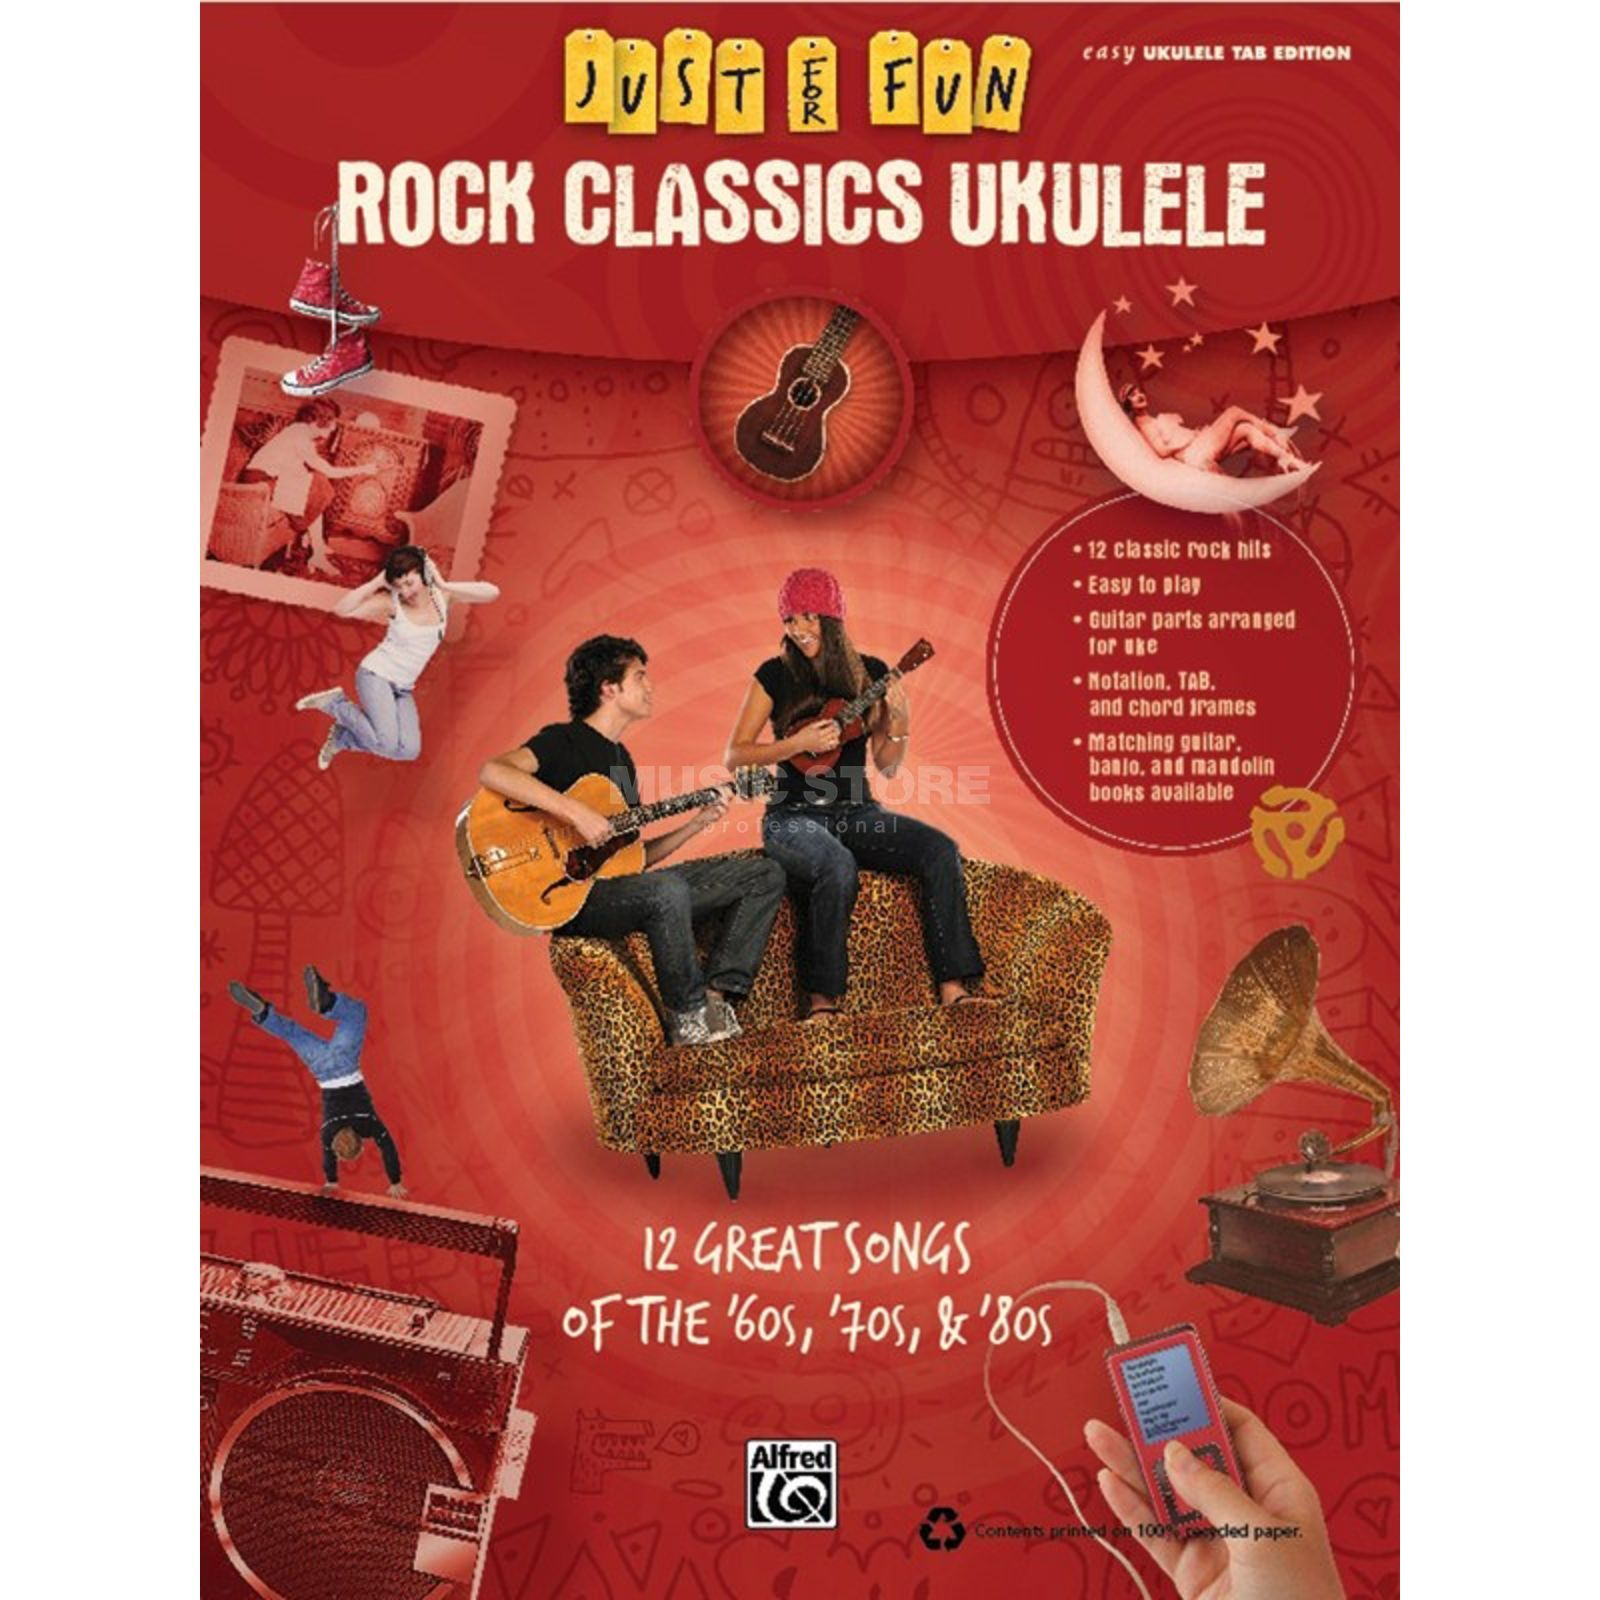 Alfred Music Rock Classics - Ukulele Just for Fun Produktbillede